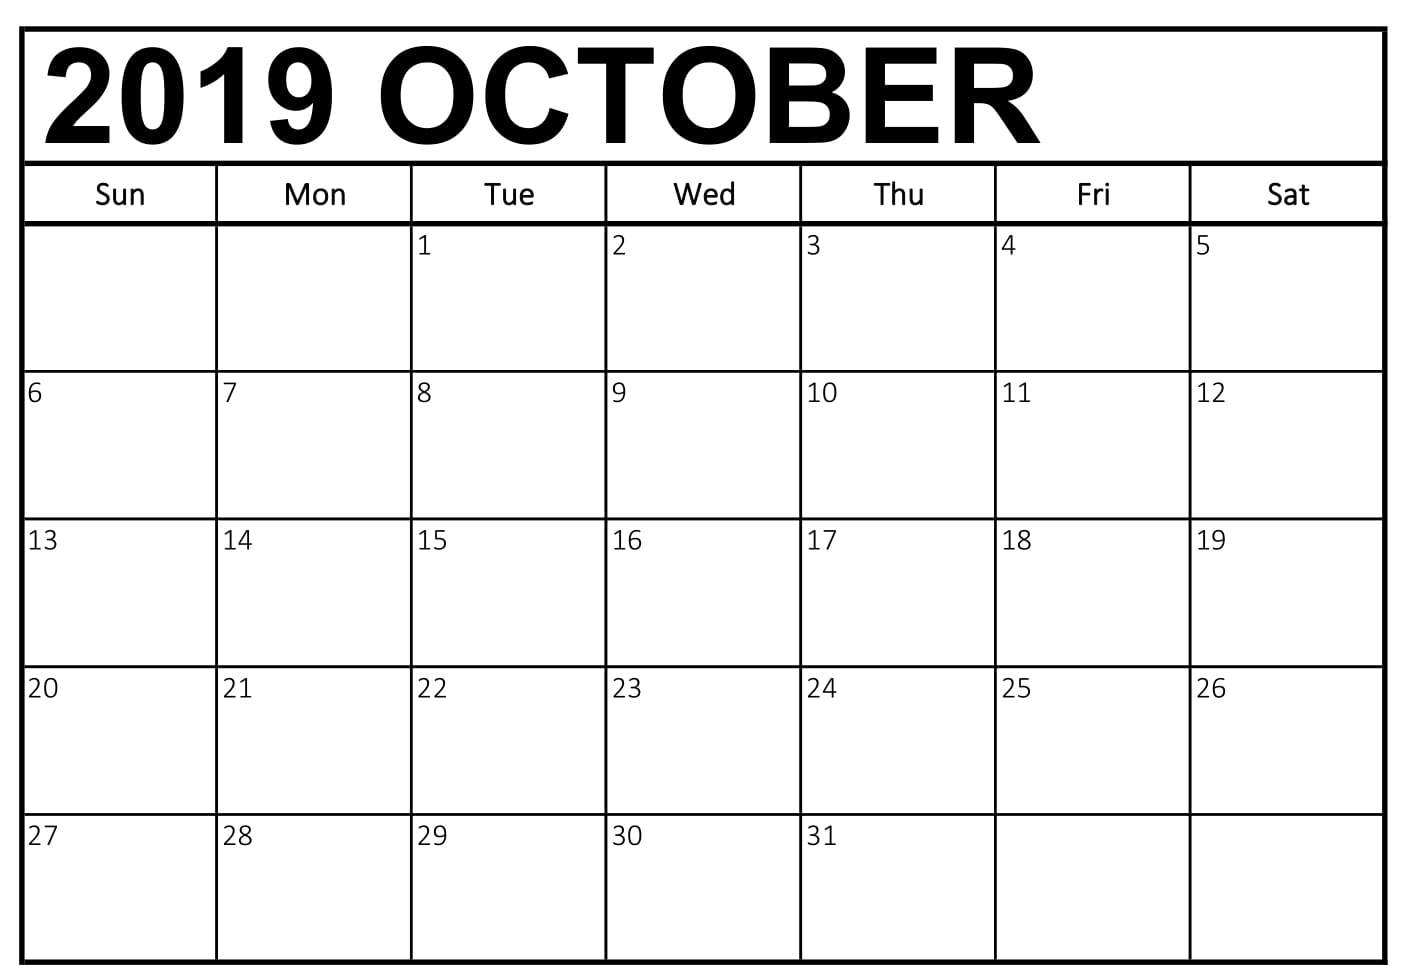 Free October 2019 Calendar Printable Template Pdf Notes Page Formats within Calendar 2019 October To December